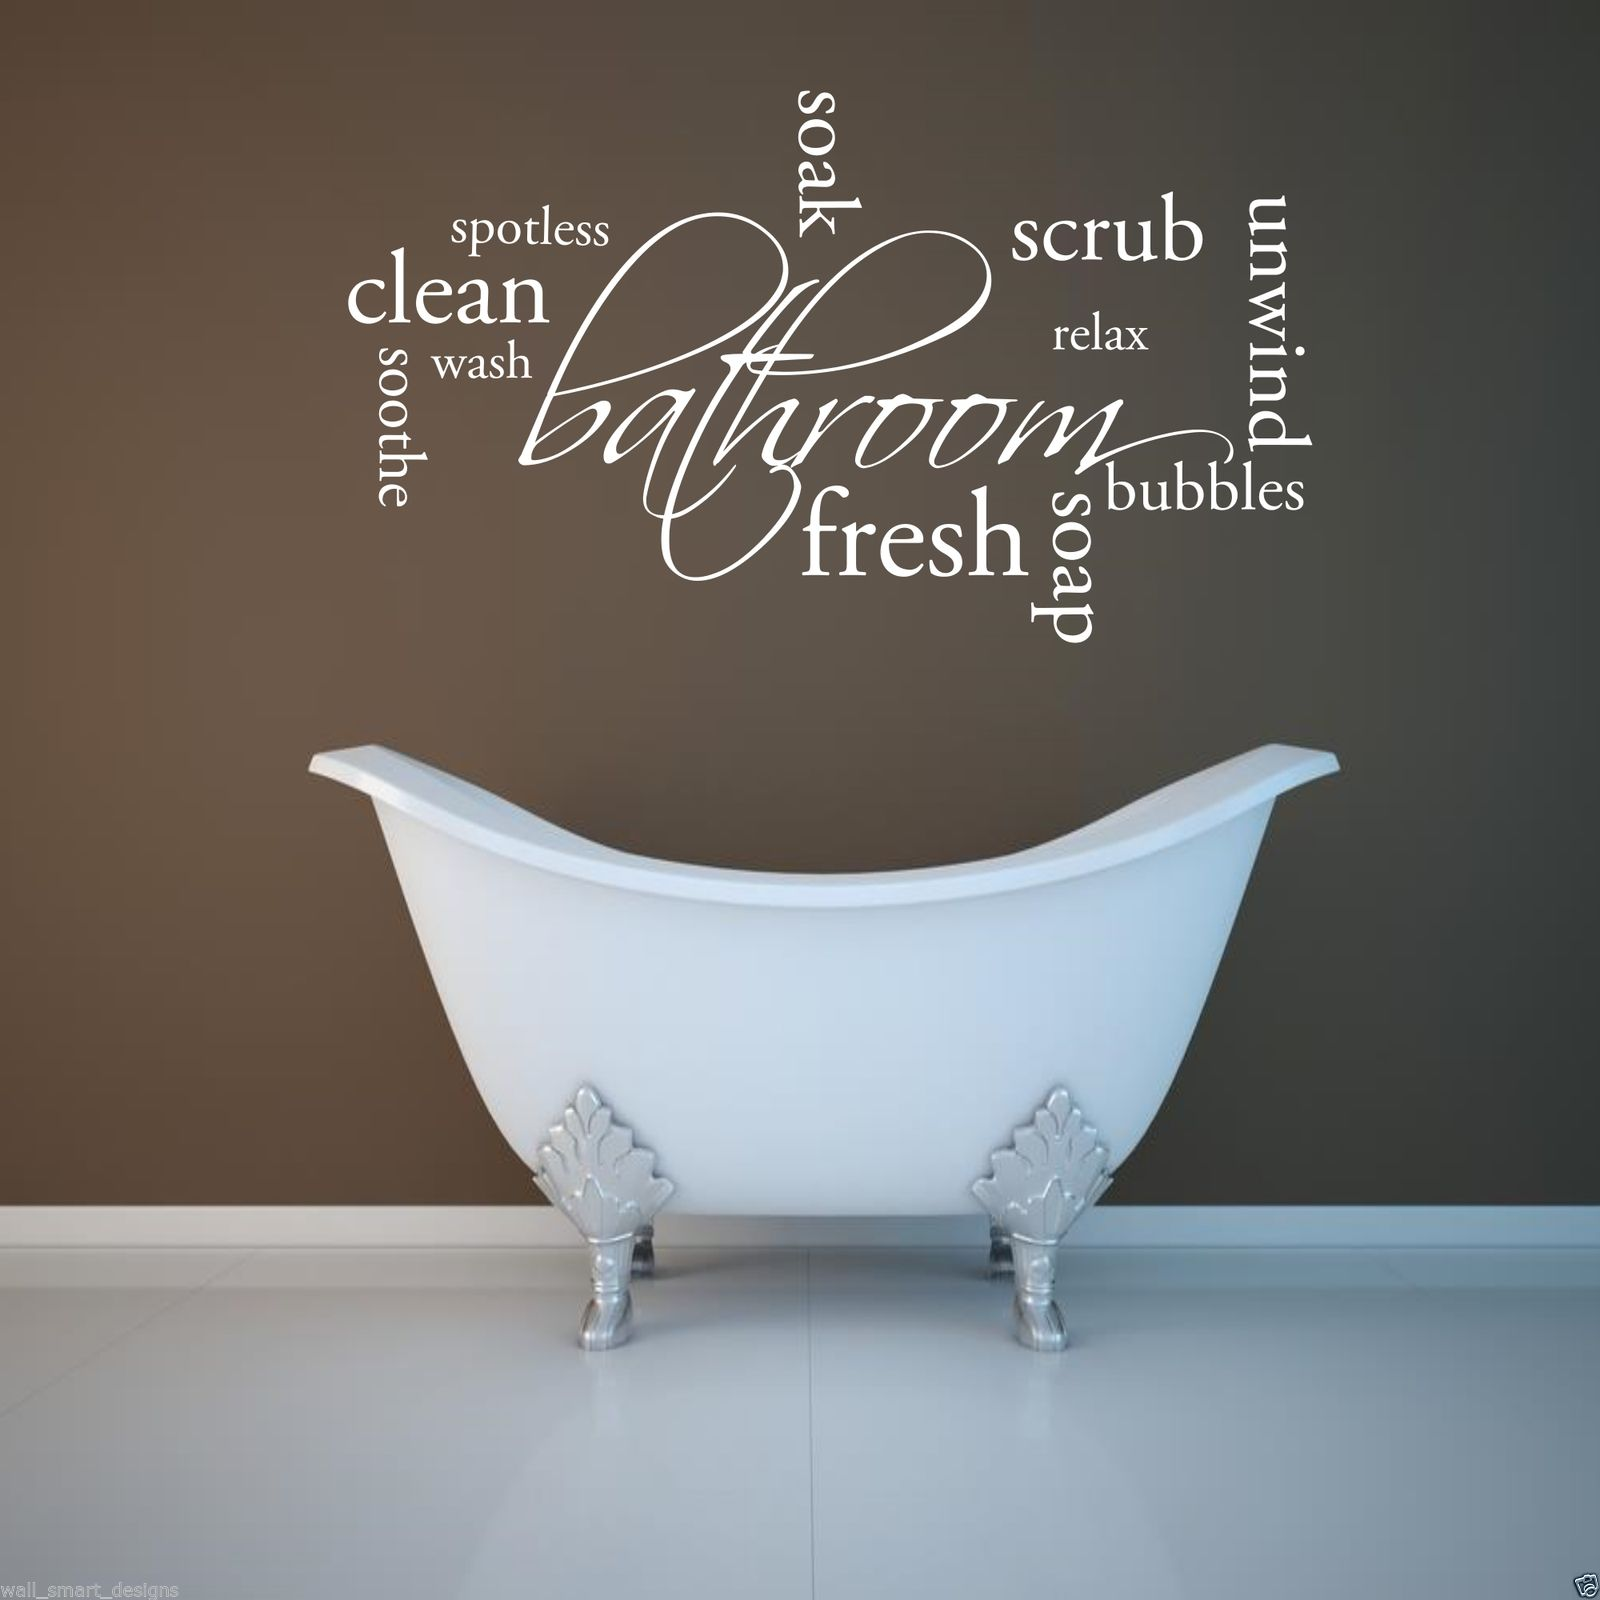 Bathroom wall art stickers - Relax Soap Bathroom Wall Art Sticker Quote Decal